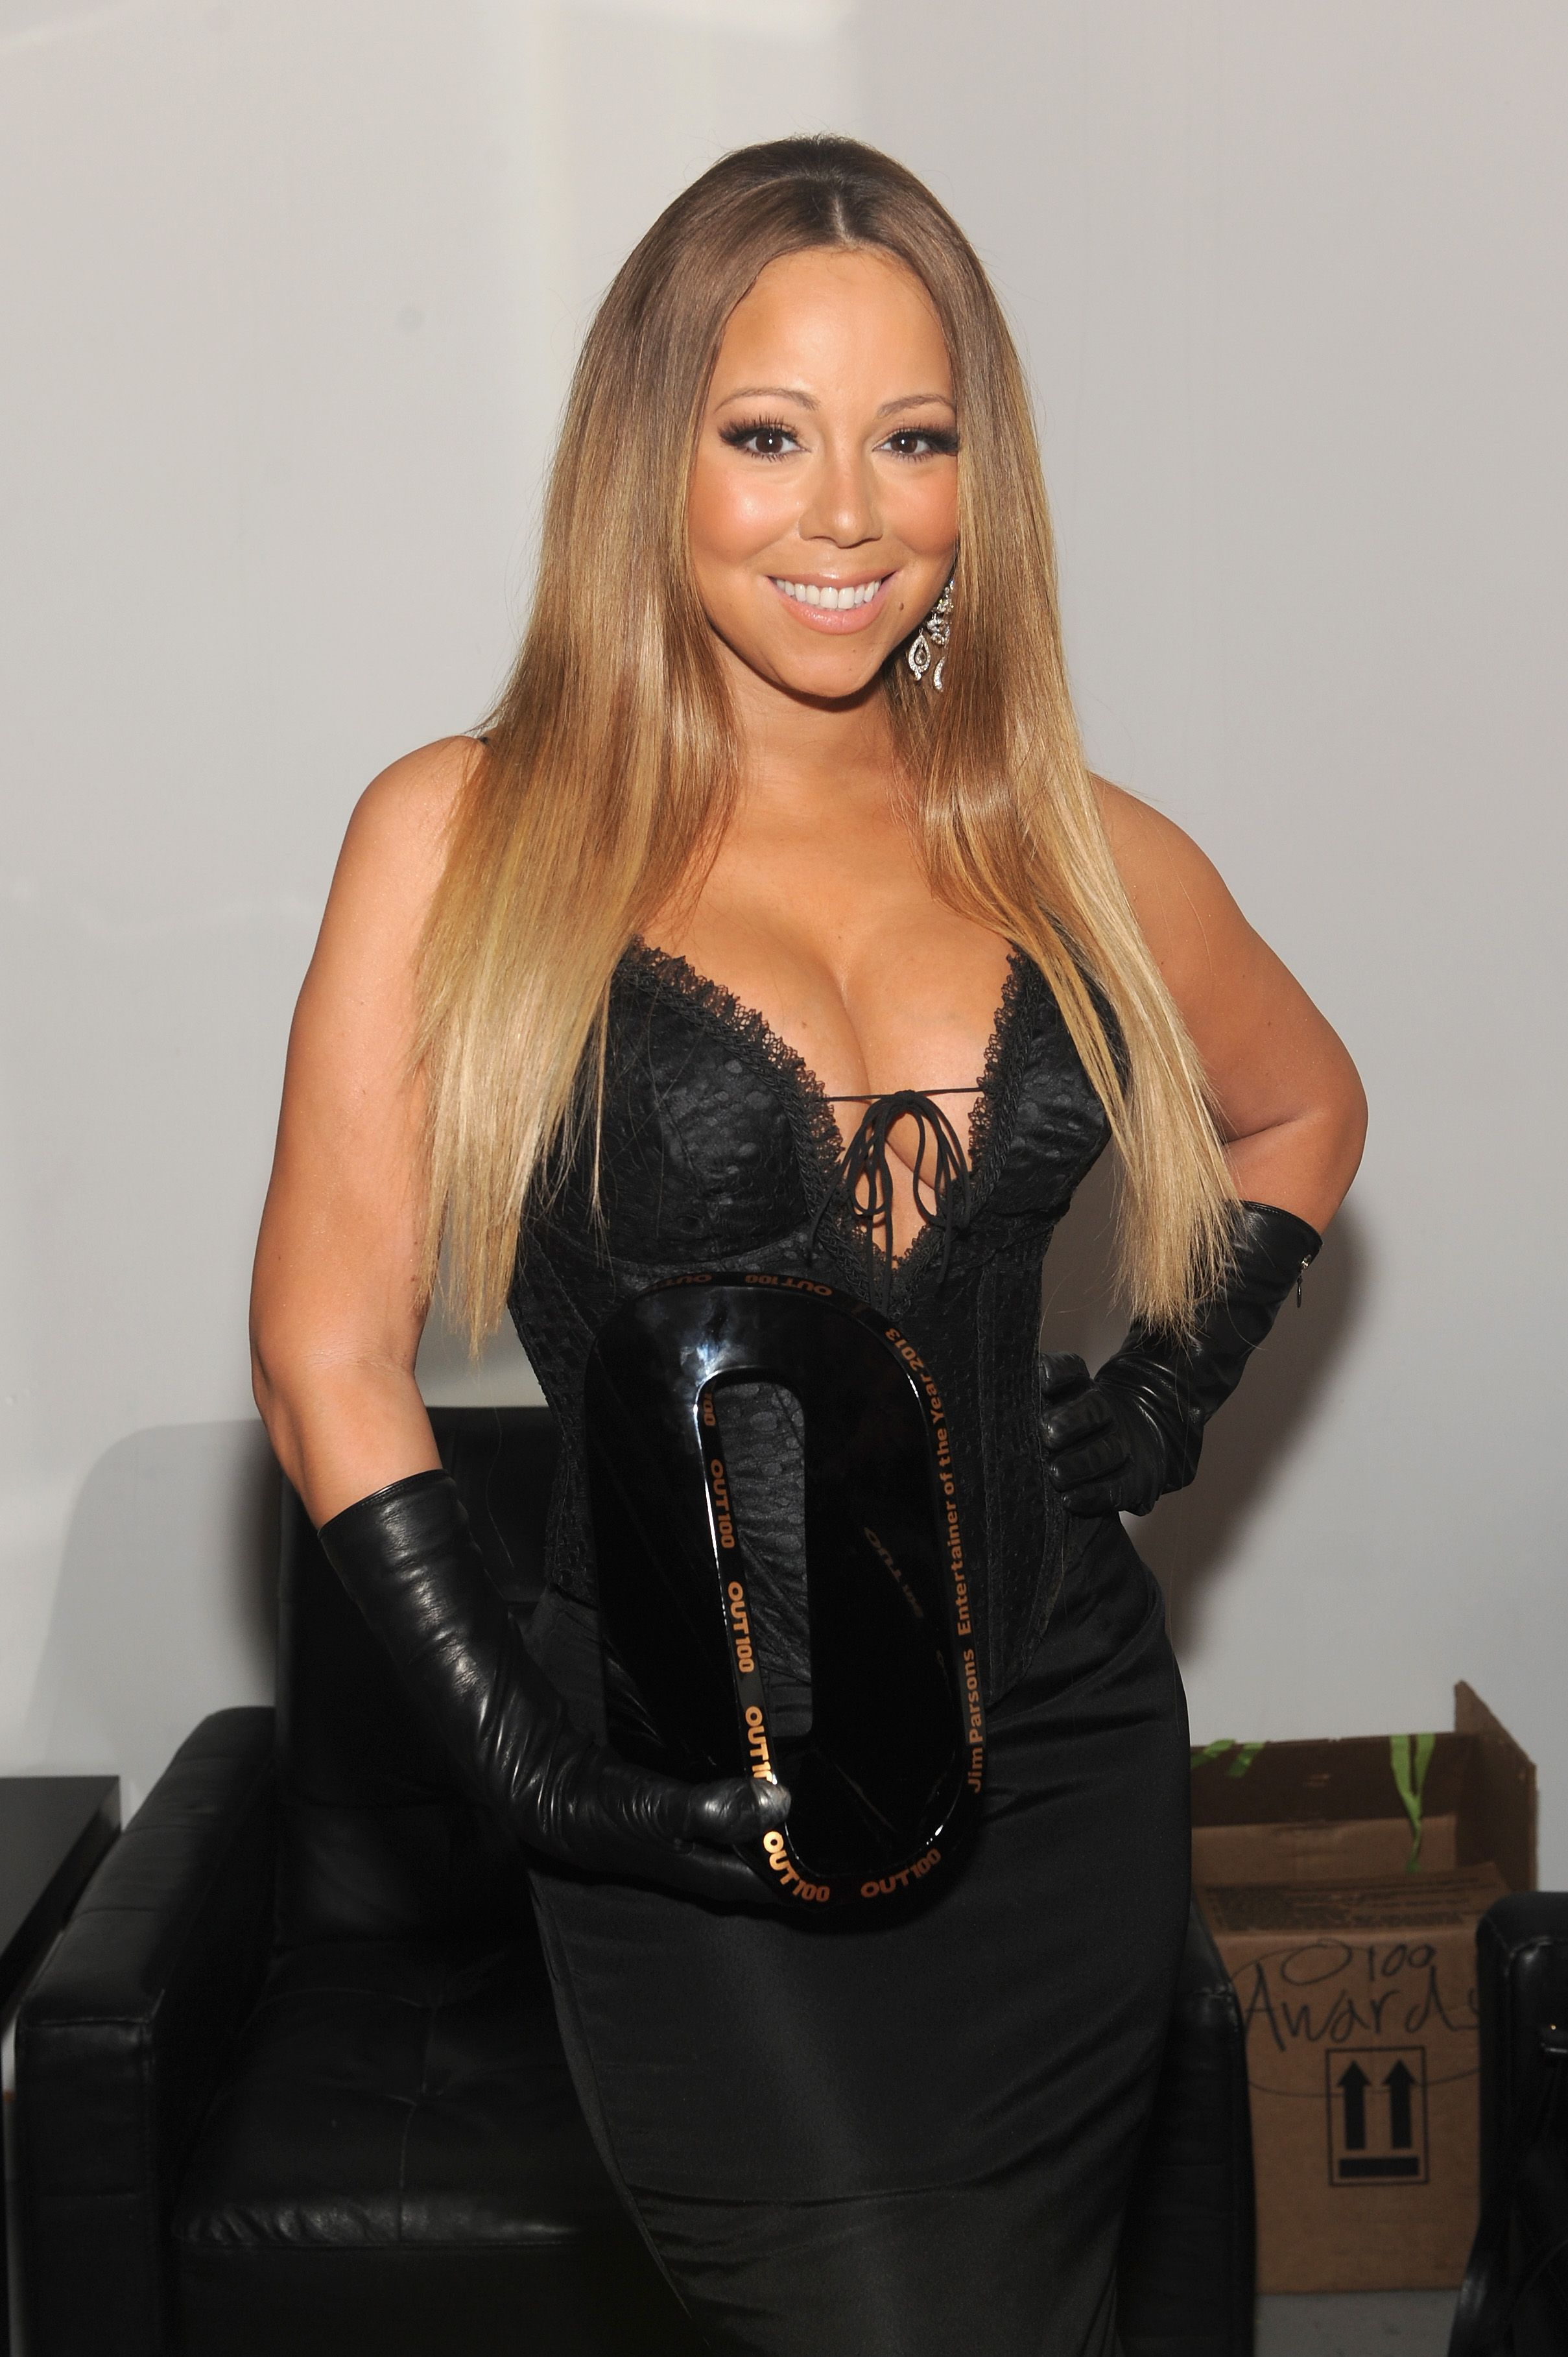 Mariah Carey during the 19th Annual Out100 Awards presented by Buick at Terminal 5 on November 14, 2013 in New York City. | Source: Getty Images